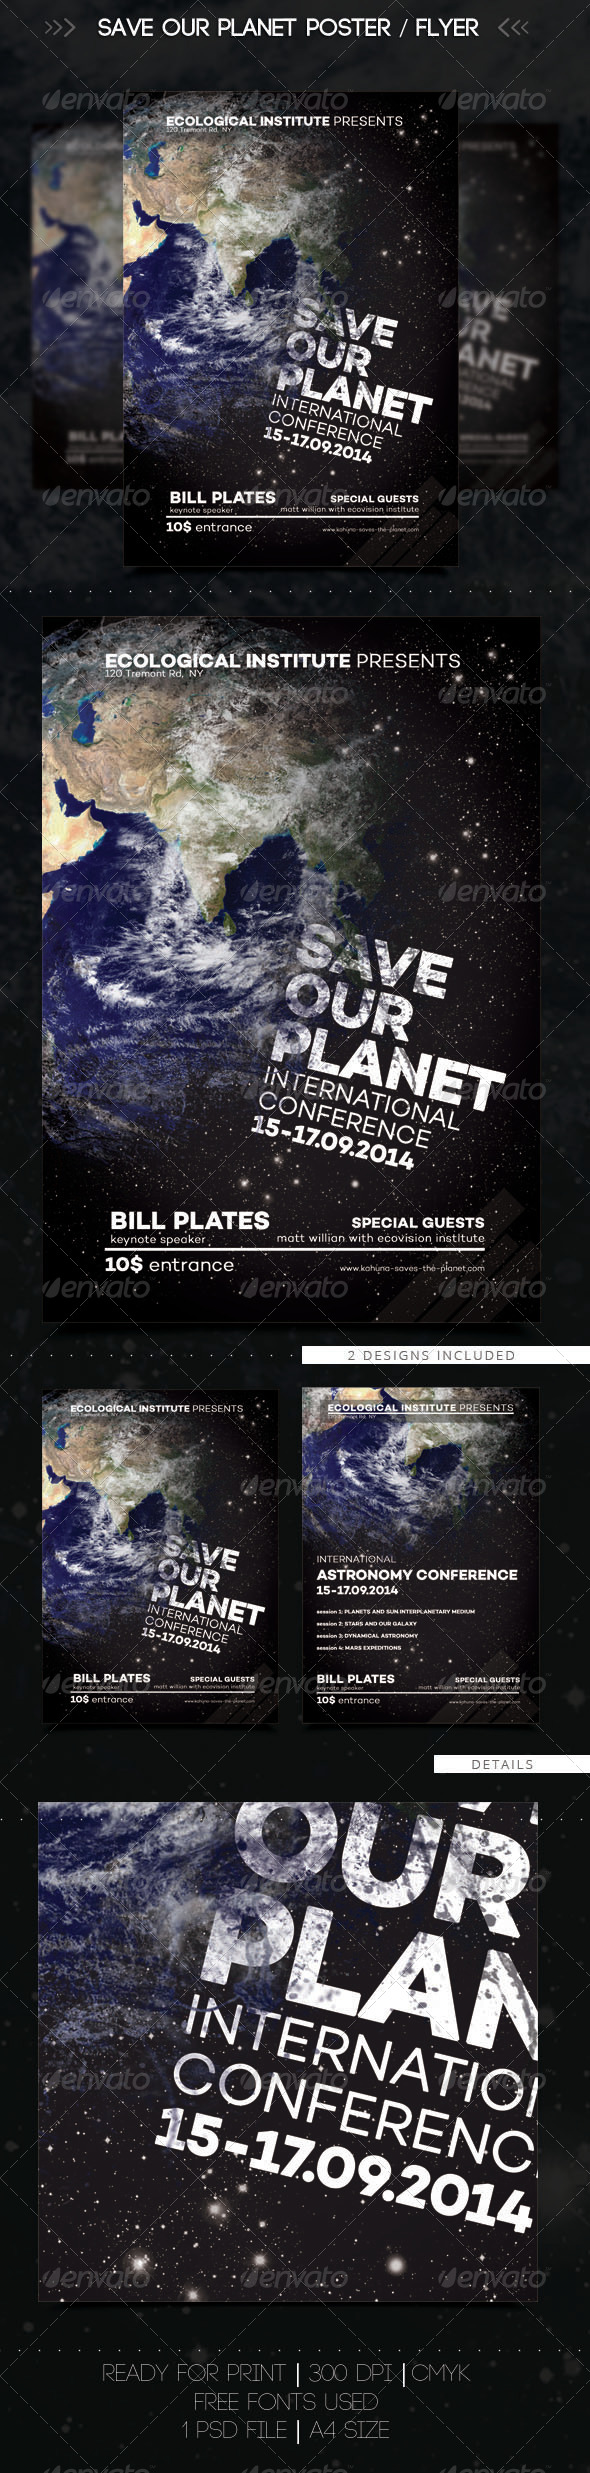 Save The Planet Flyer / Poster - Miscellaneous Events